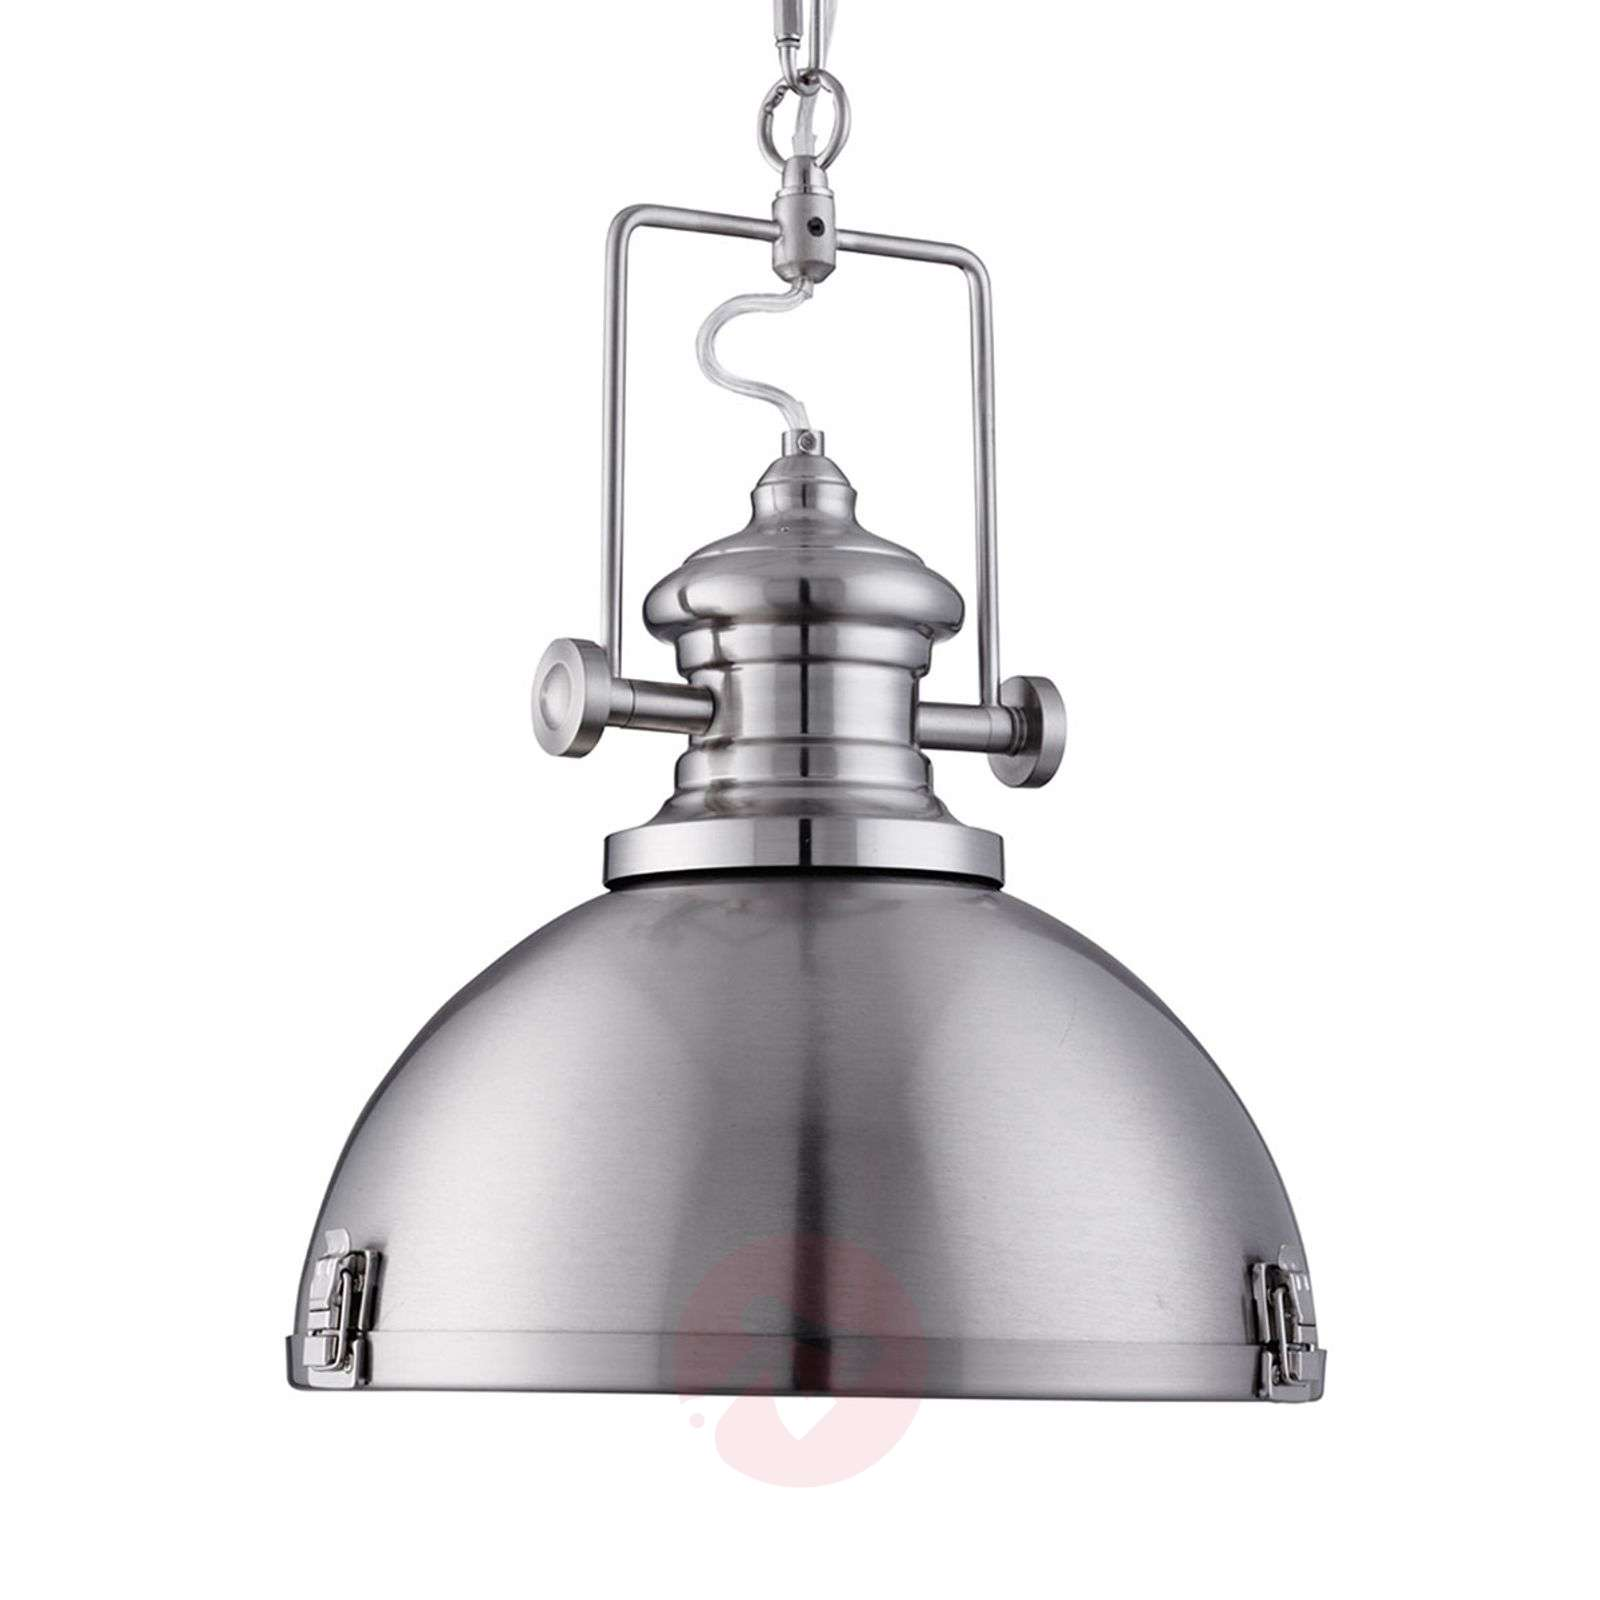 Popular industrial pendant light Silver-8570989-01